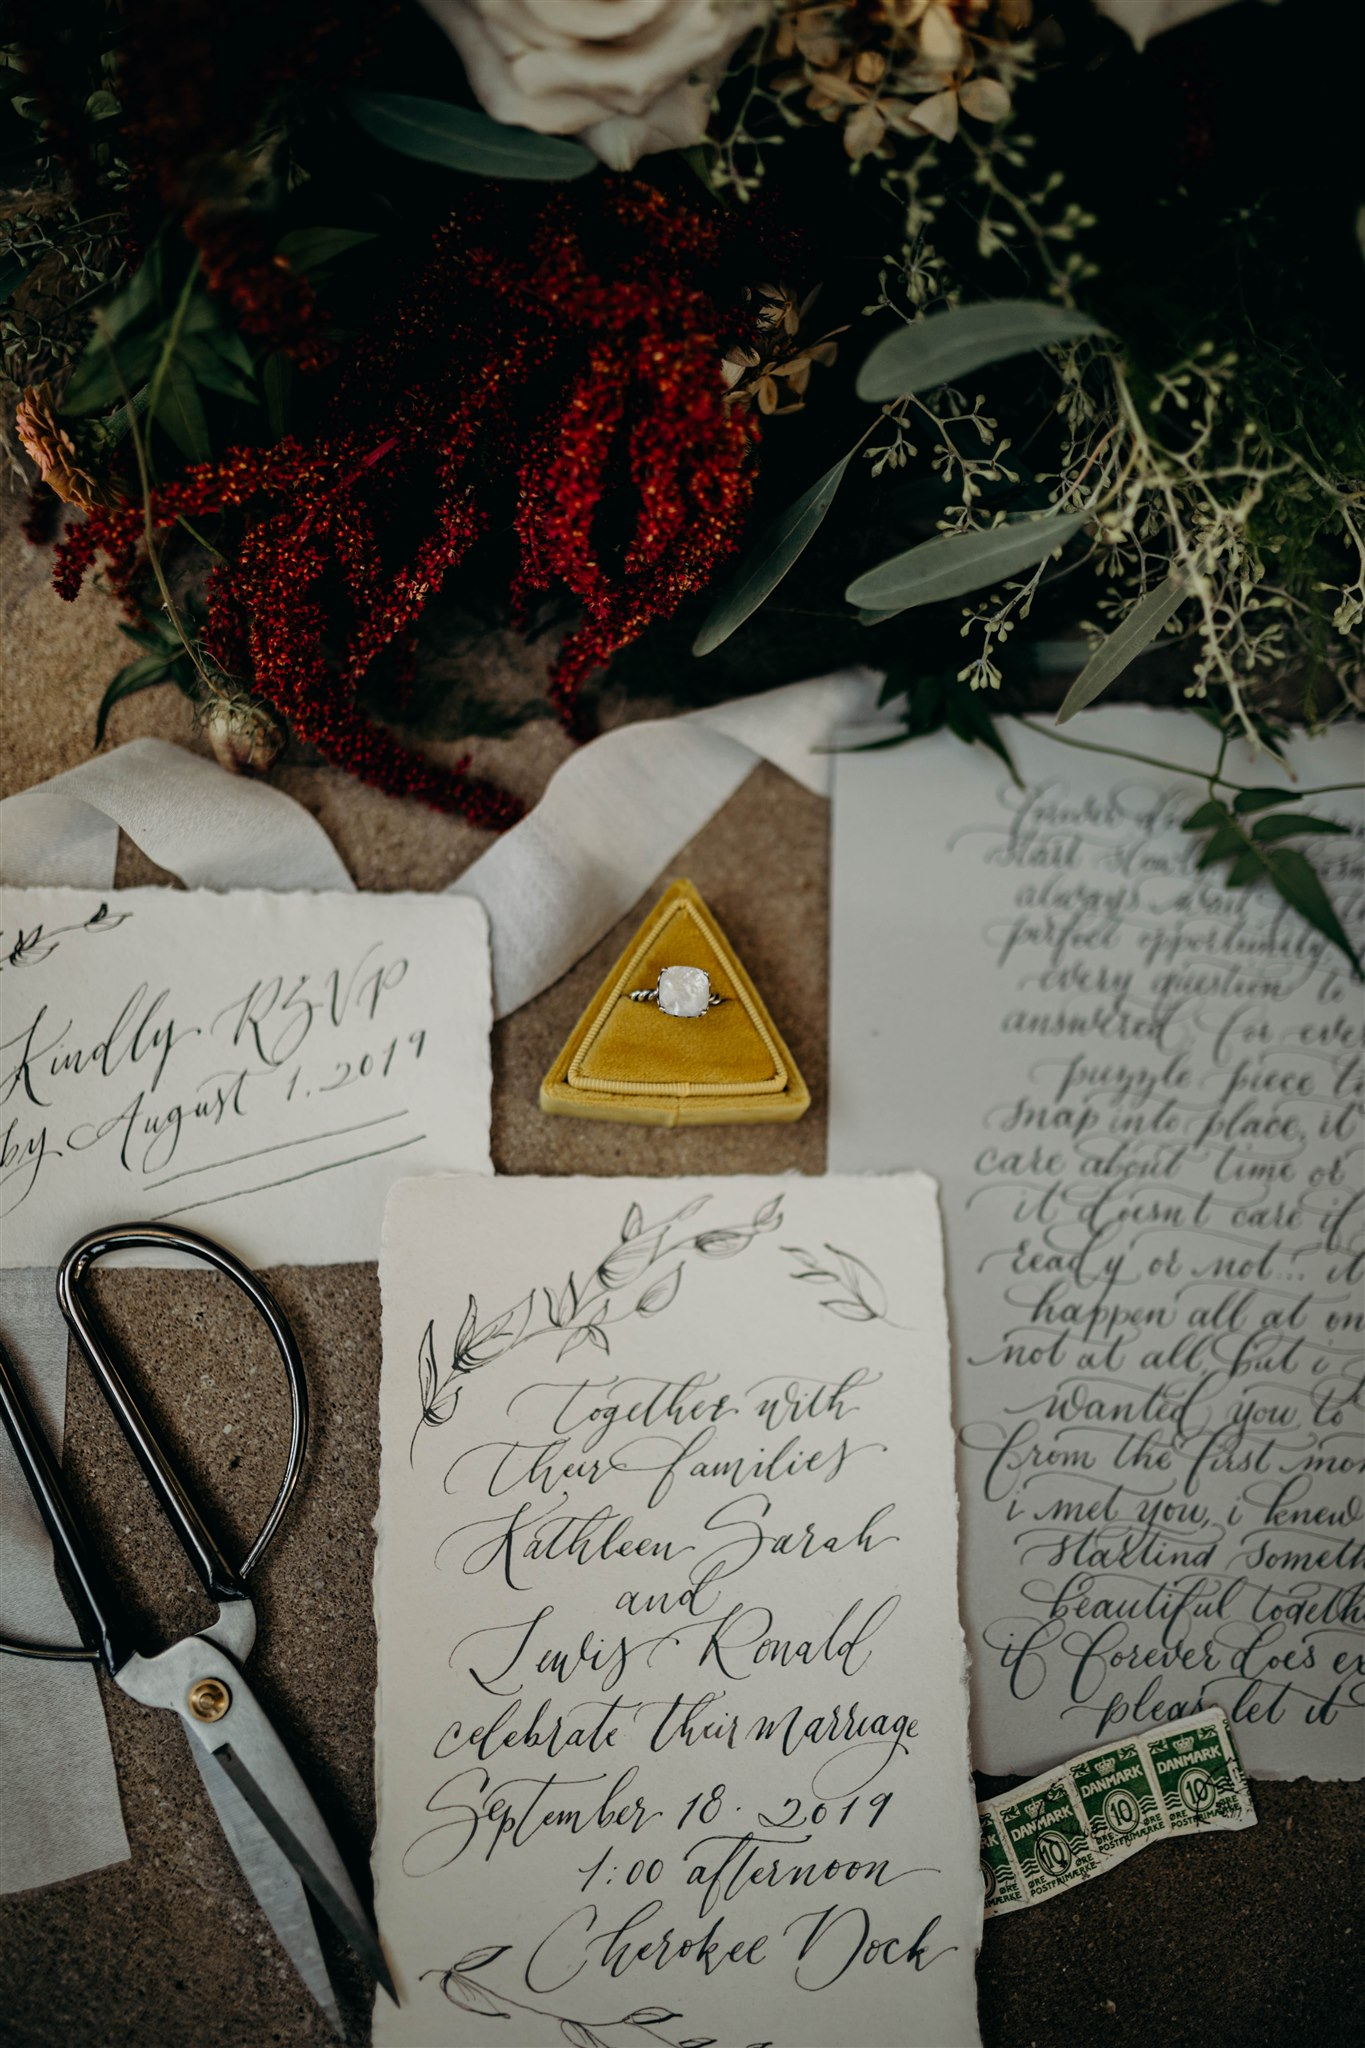 Script wedding invitation design by White Ink Calligraphy